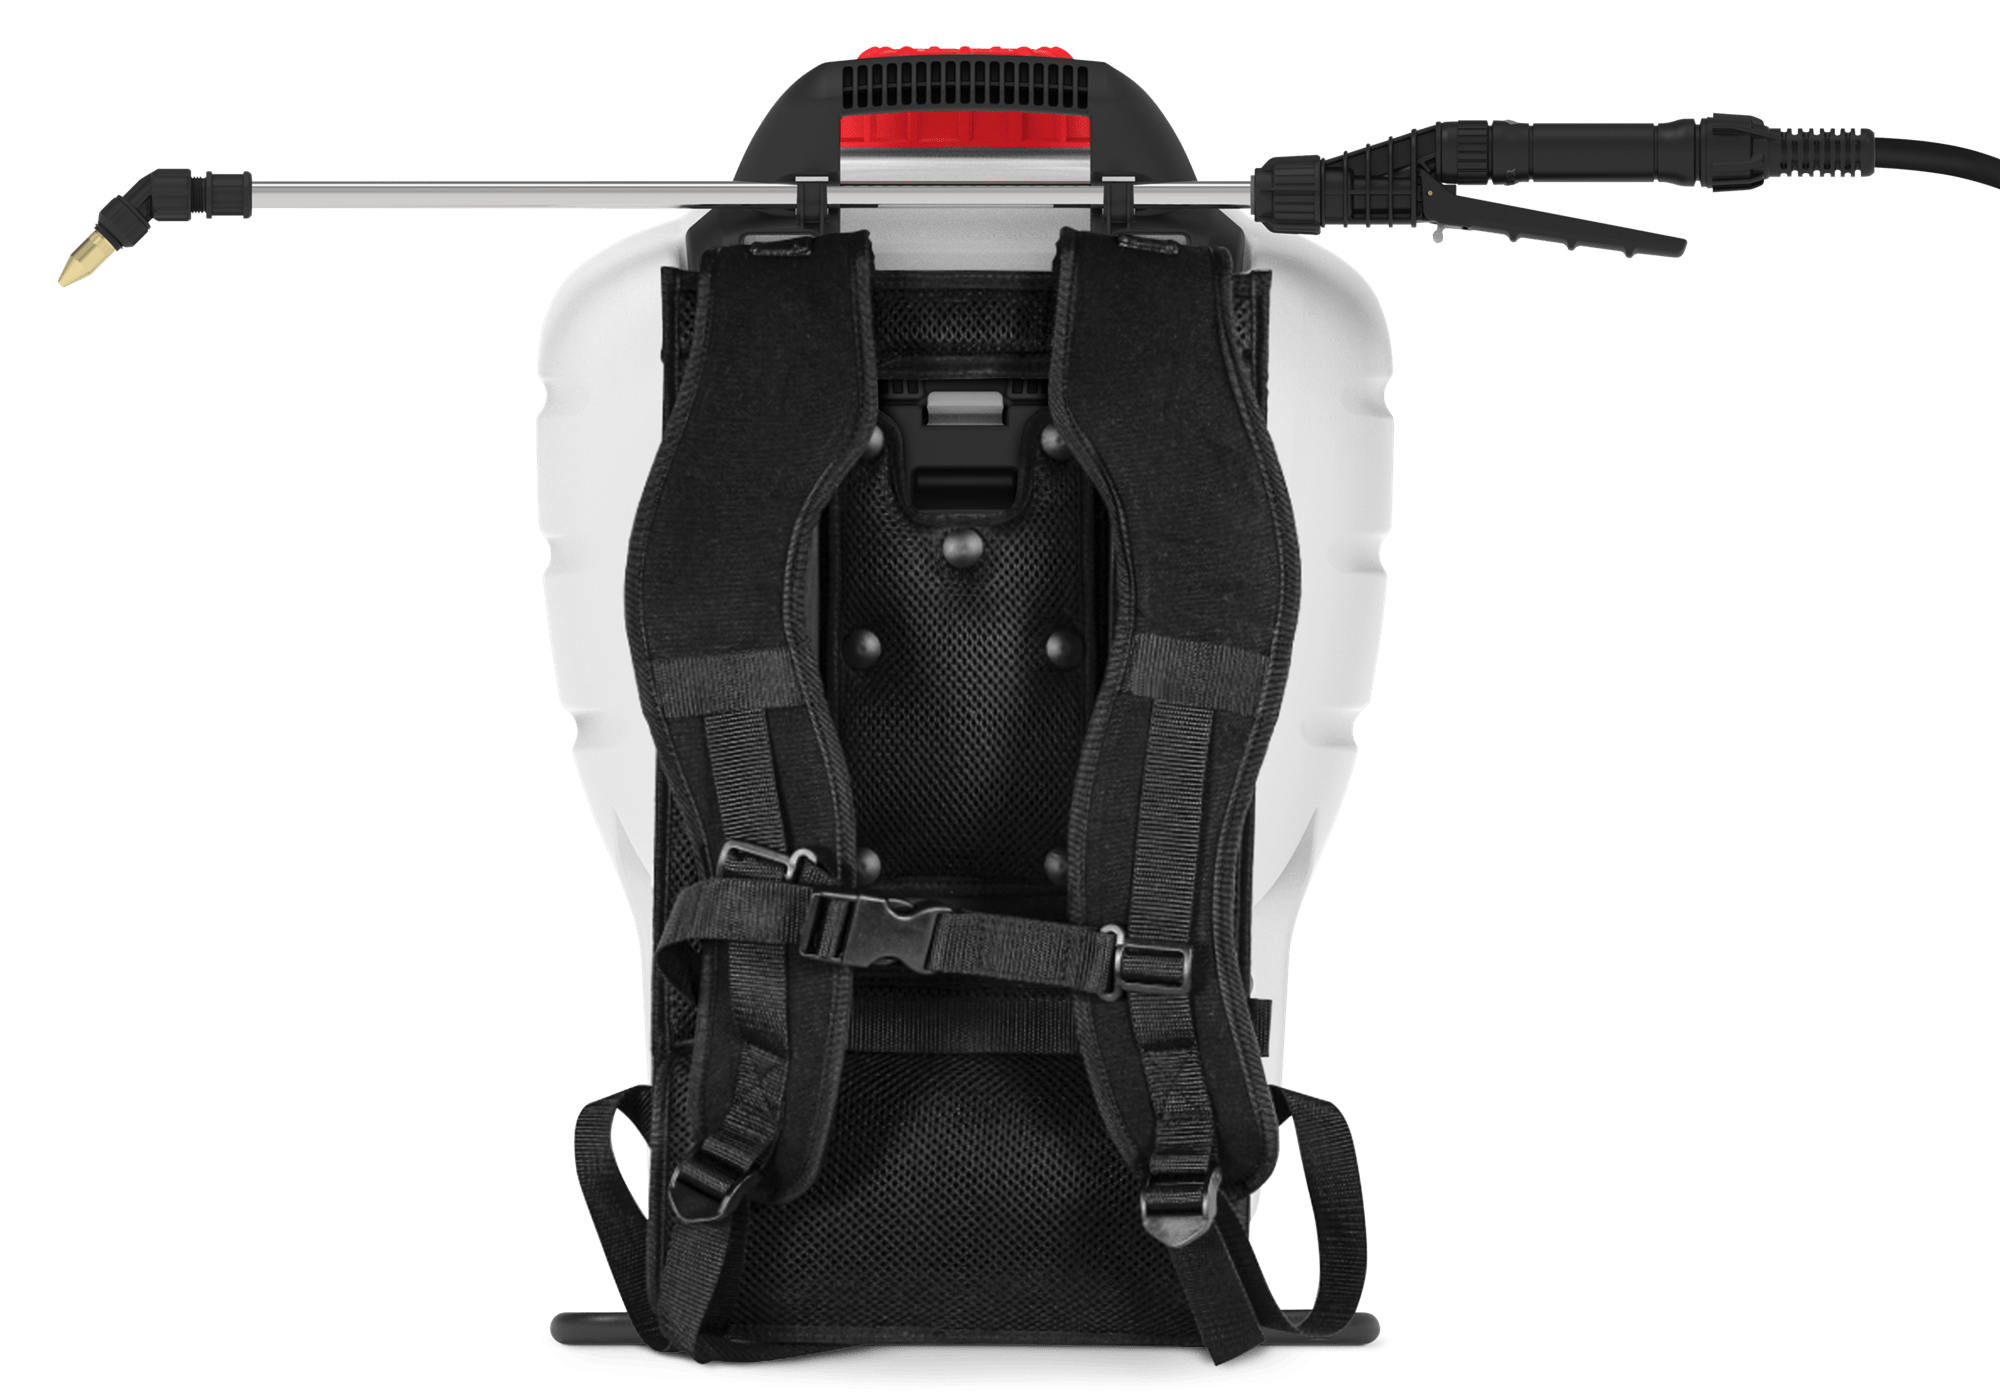 Harness for Red Max backpack battery sprayer